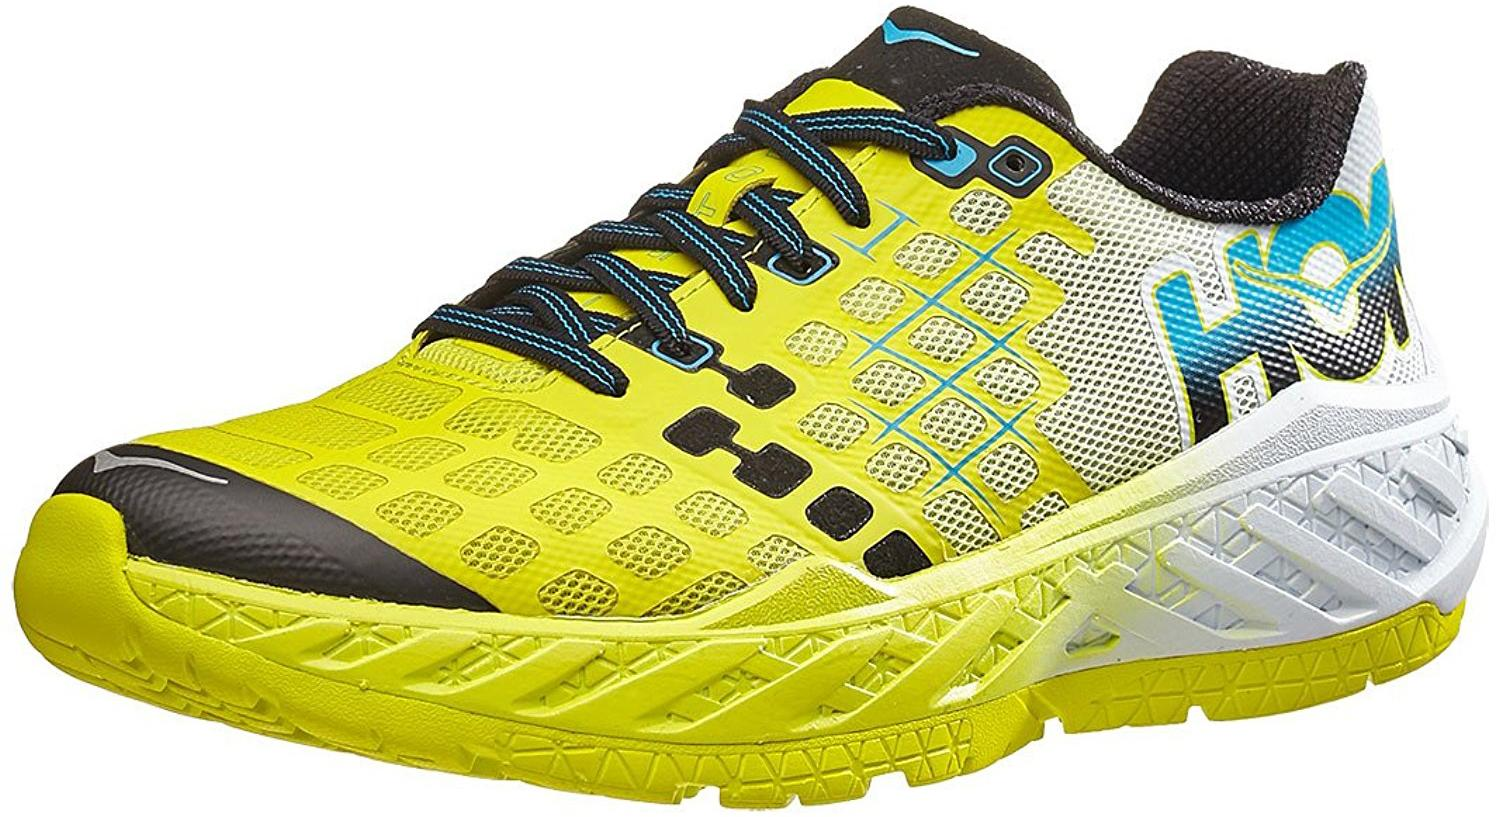 Best Rated Hoka One One Shoes